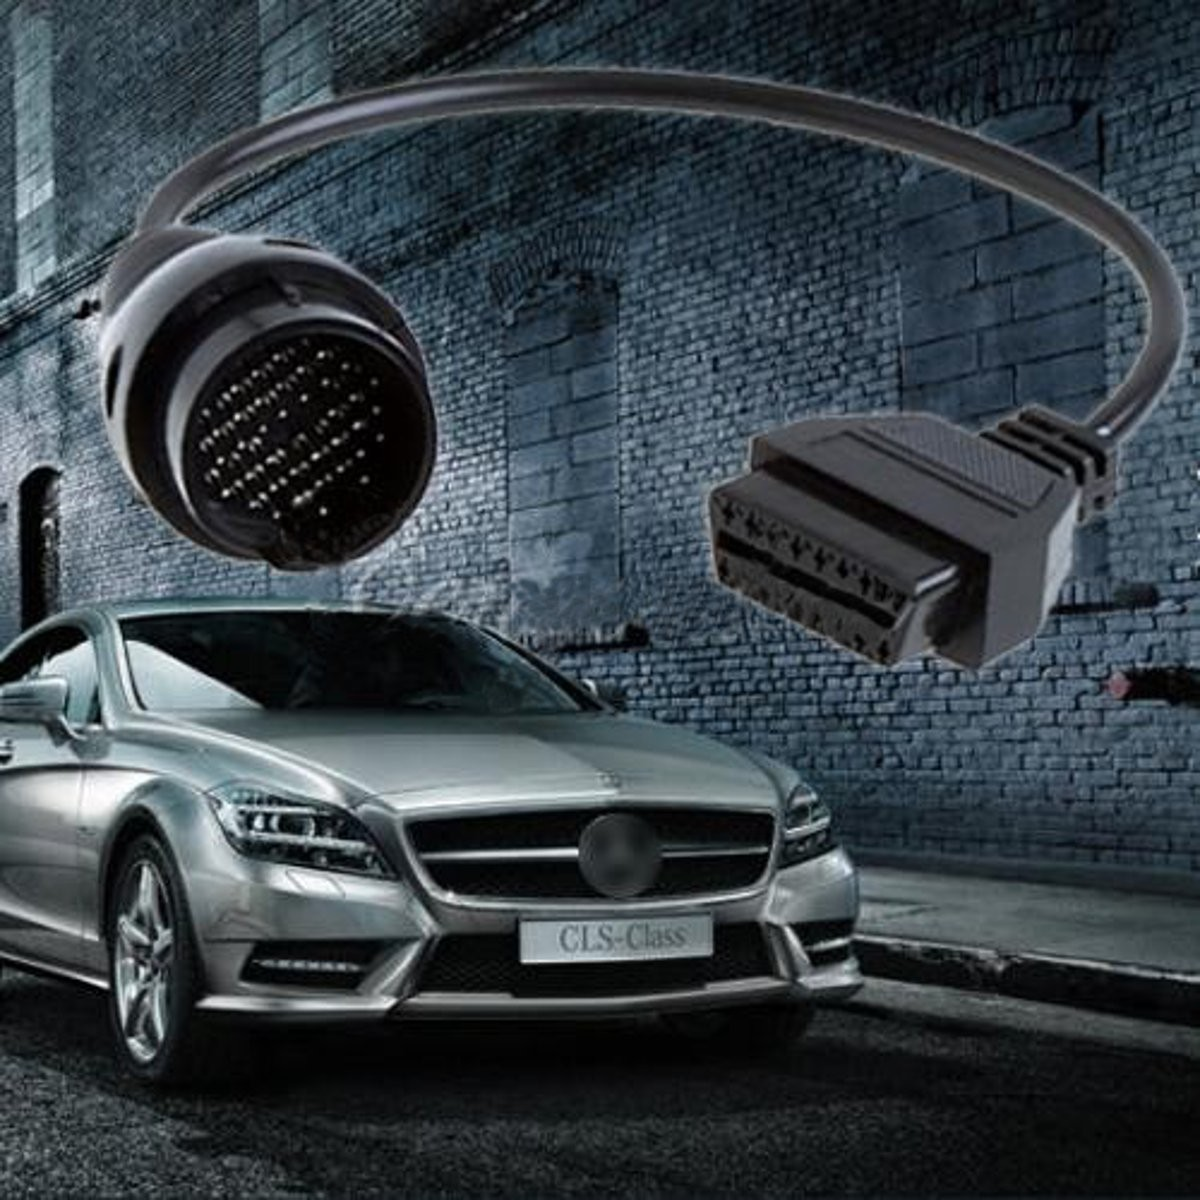 38 pin to 16 pin obd2 obdii diagnostic cable adapter for Promo code for mercedes benz accessories